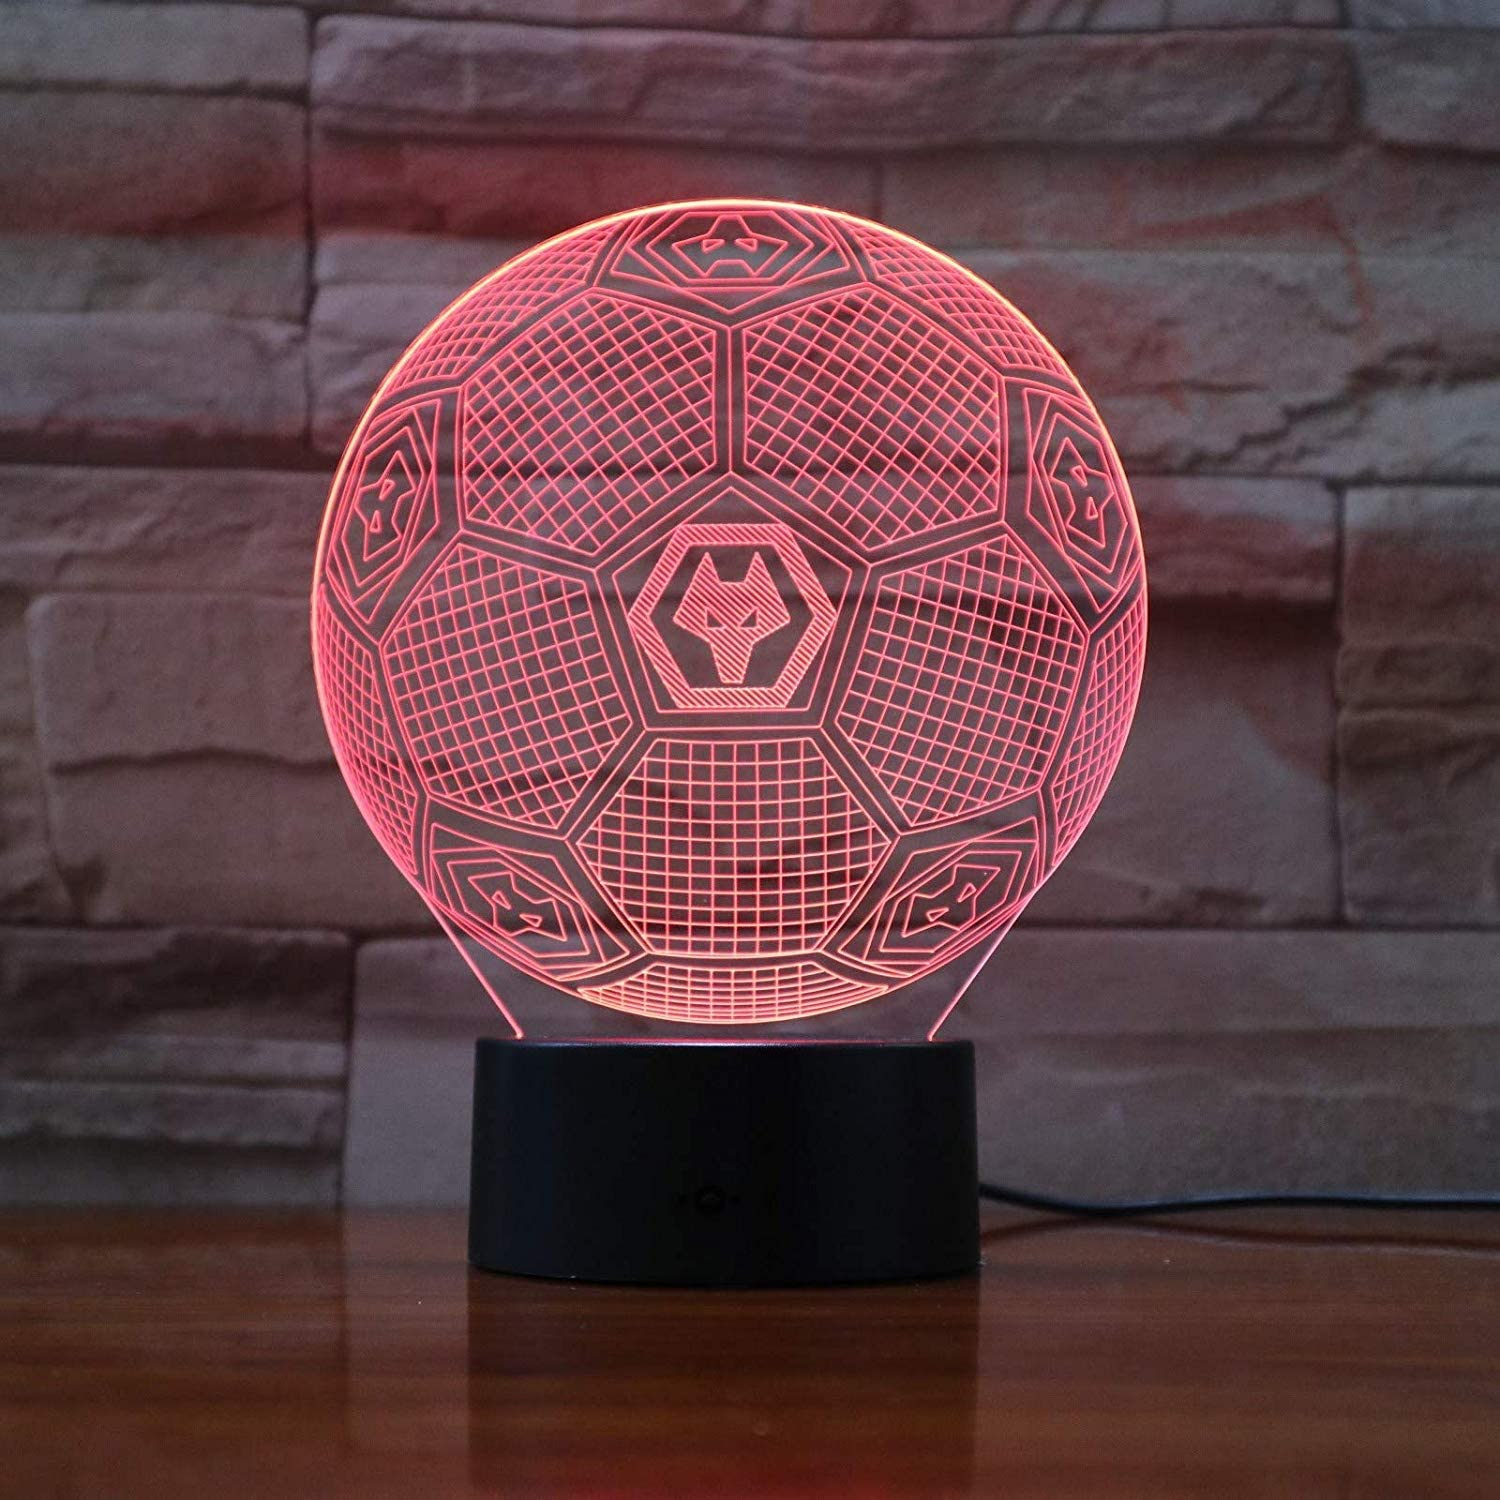 3D Night Light Night Lights Fc Wolves 3D Illusion Led Boys Kids Baby Gifts Soccer Premier League Football Team Table Lamp Bedside Decoration WGWNYN